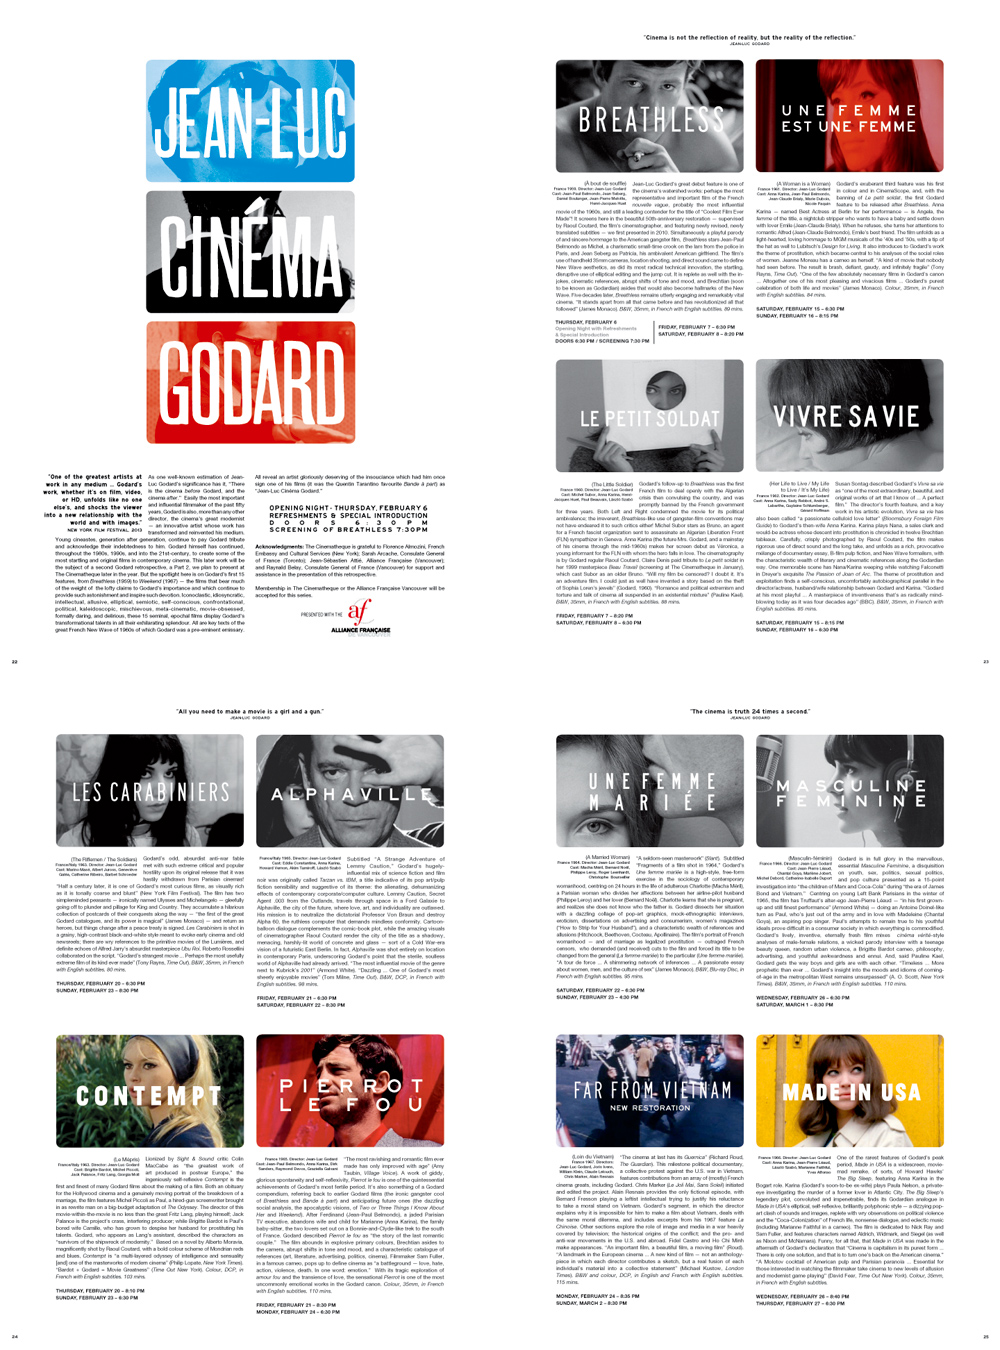 Jean-Luc-Cinema-Godard-TheCinematheque_spreads